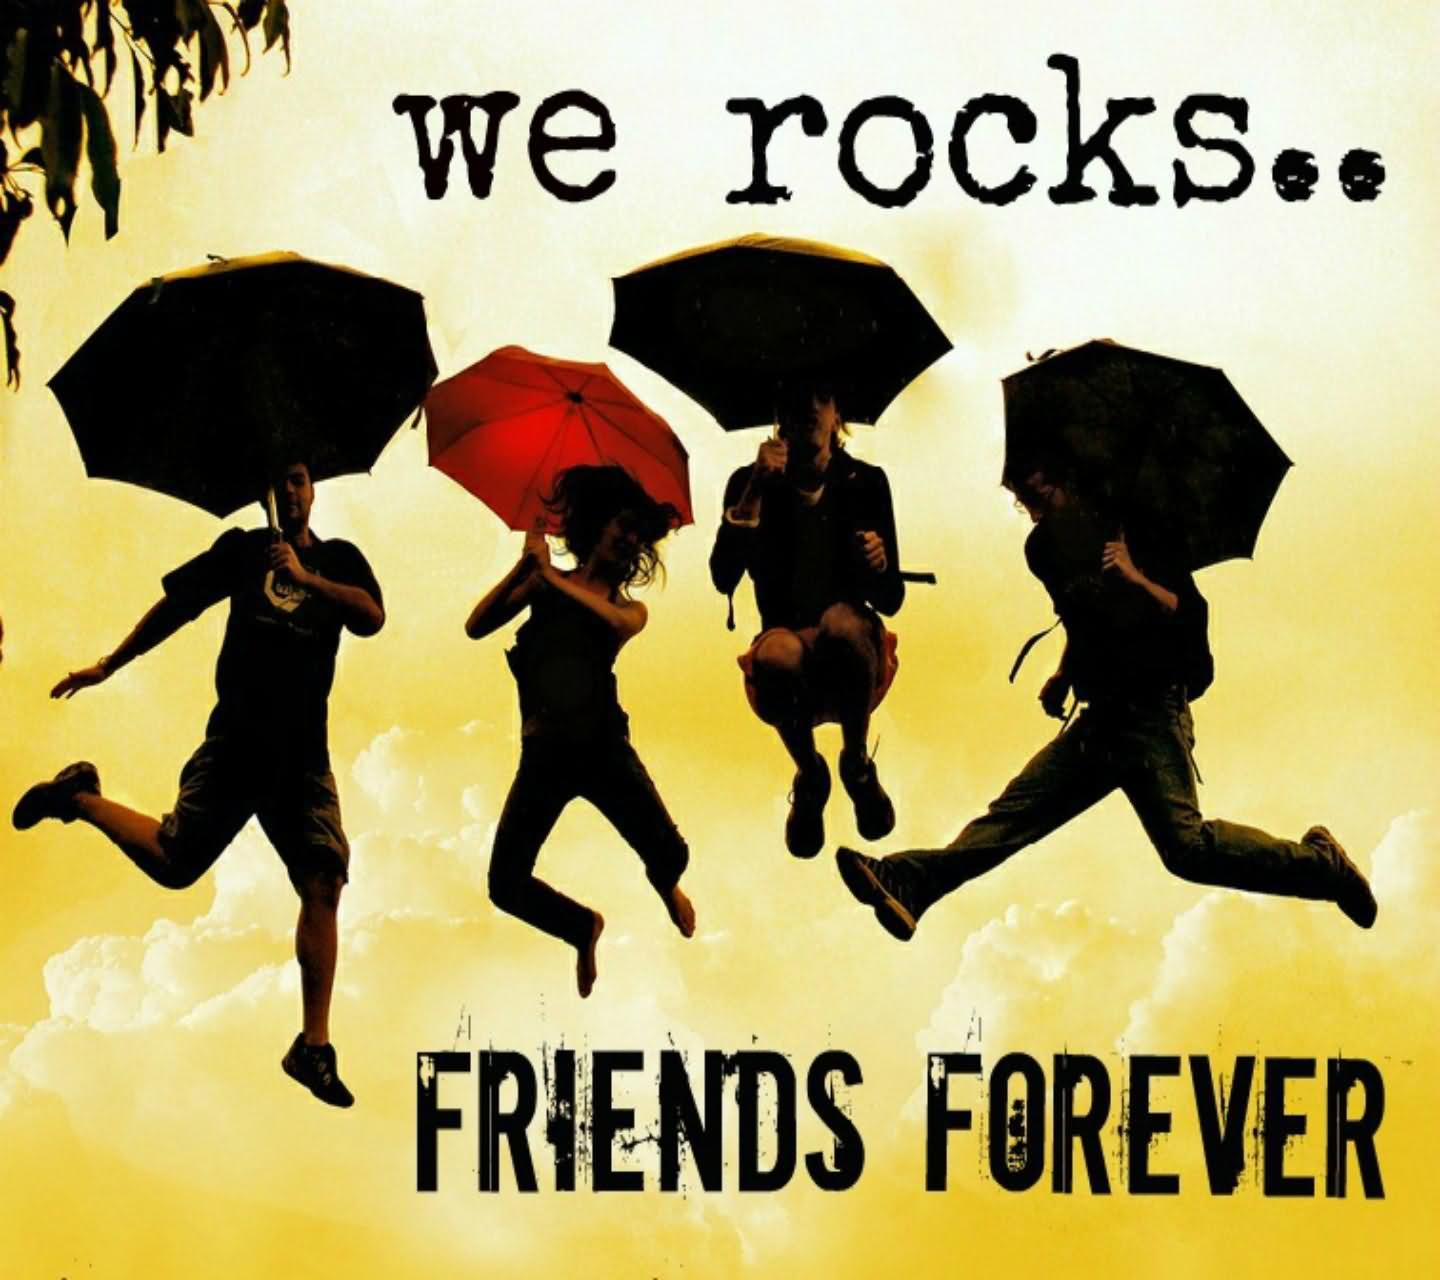 We Rocks Friends Forever Group Jump Hd Picture Jpg 1440 1280 Friendship Pictures Friends Forever Pictures Friends Wallpaper